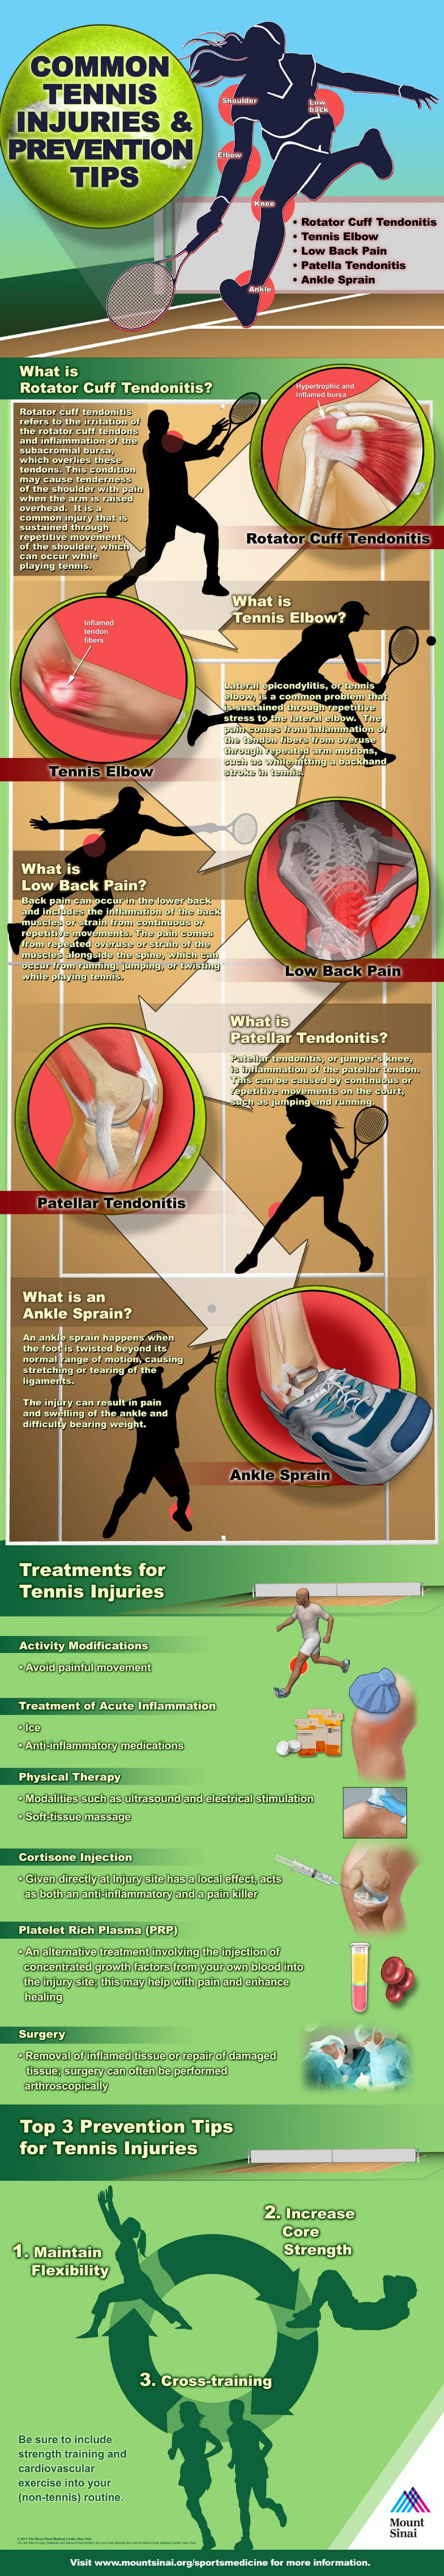 15. Most common tennis injuries and Preventions